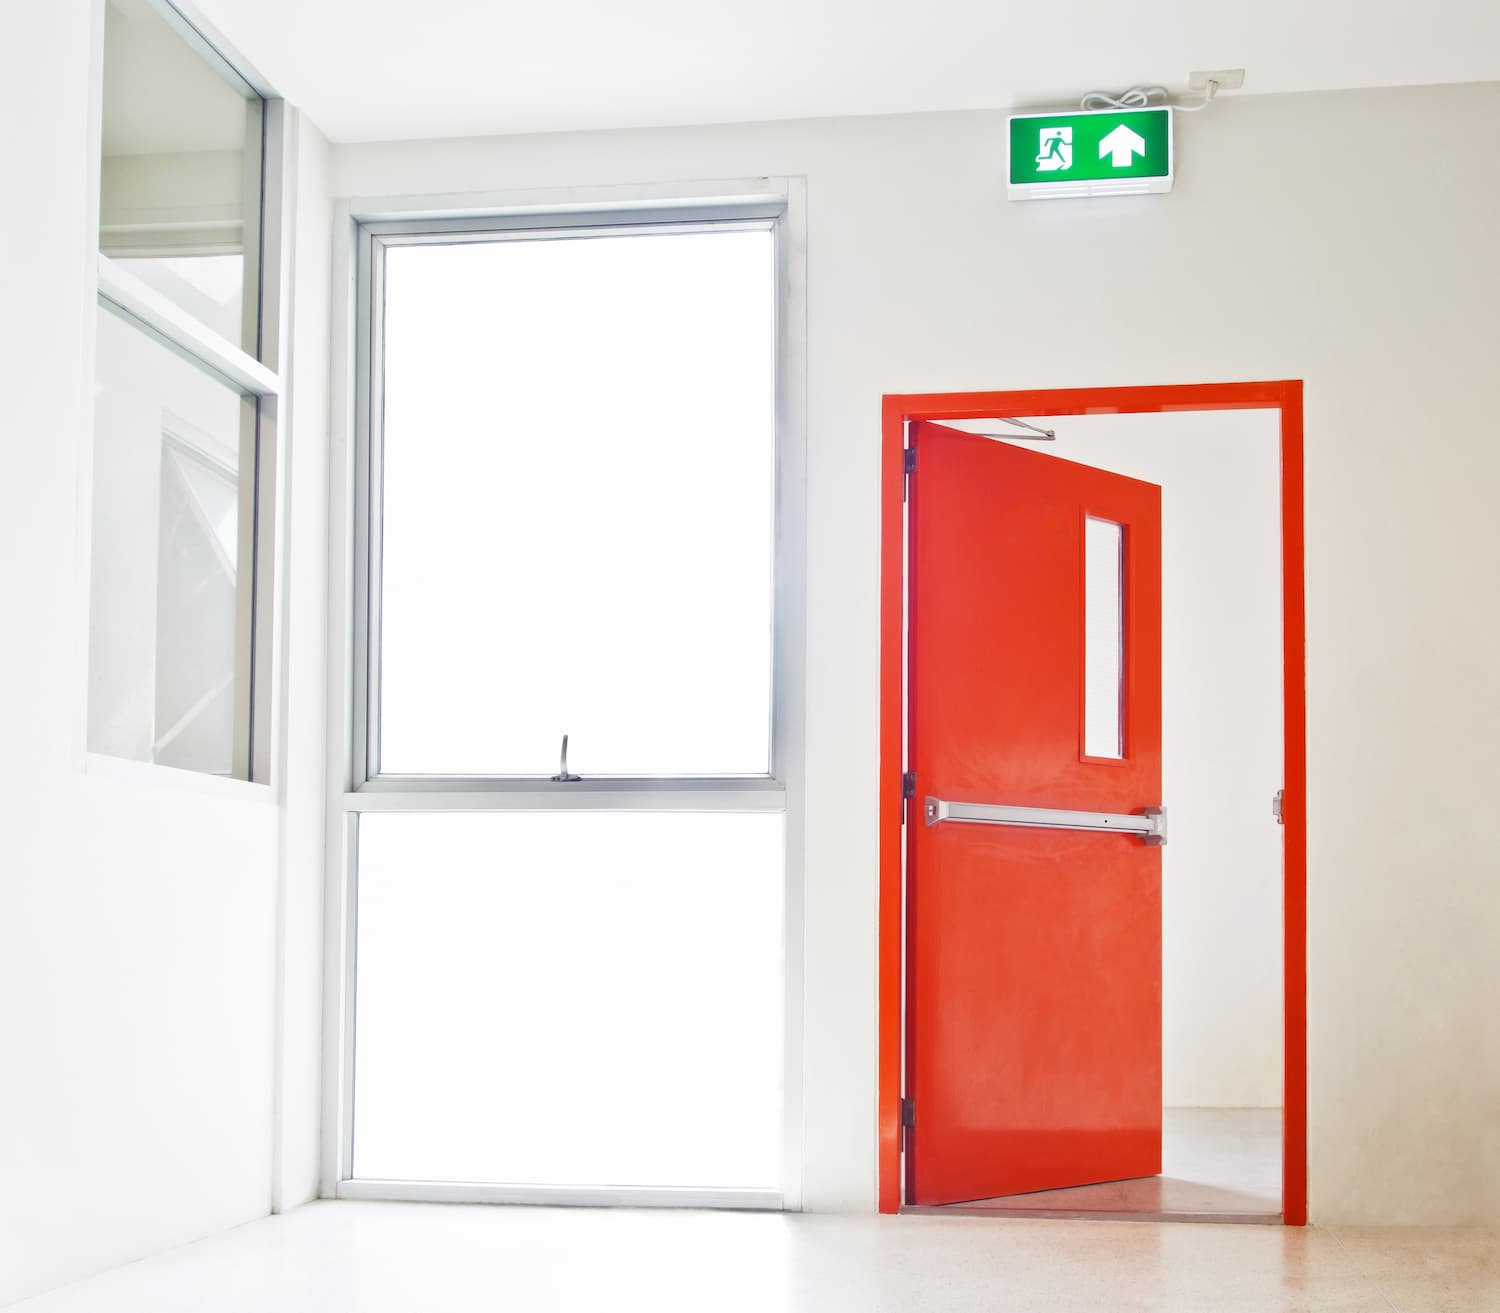 Stay compliant with Betta Fire Protection's comprehensive fire safety packages.